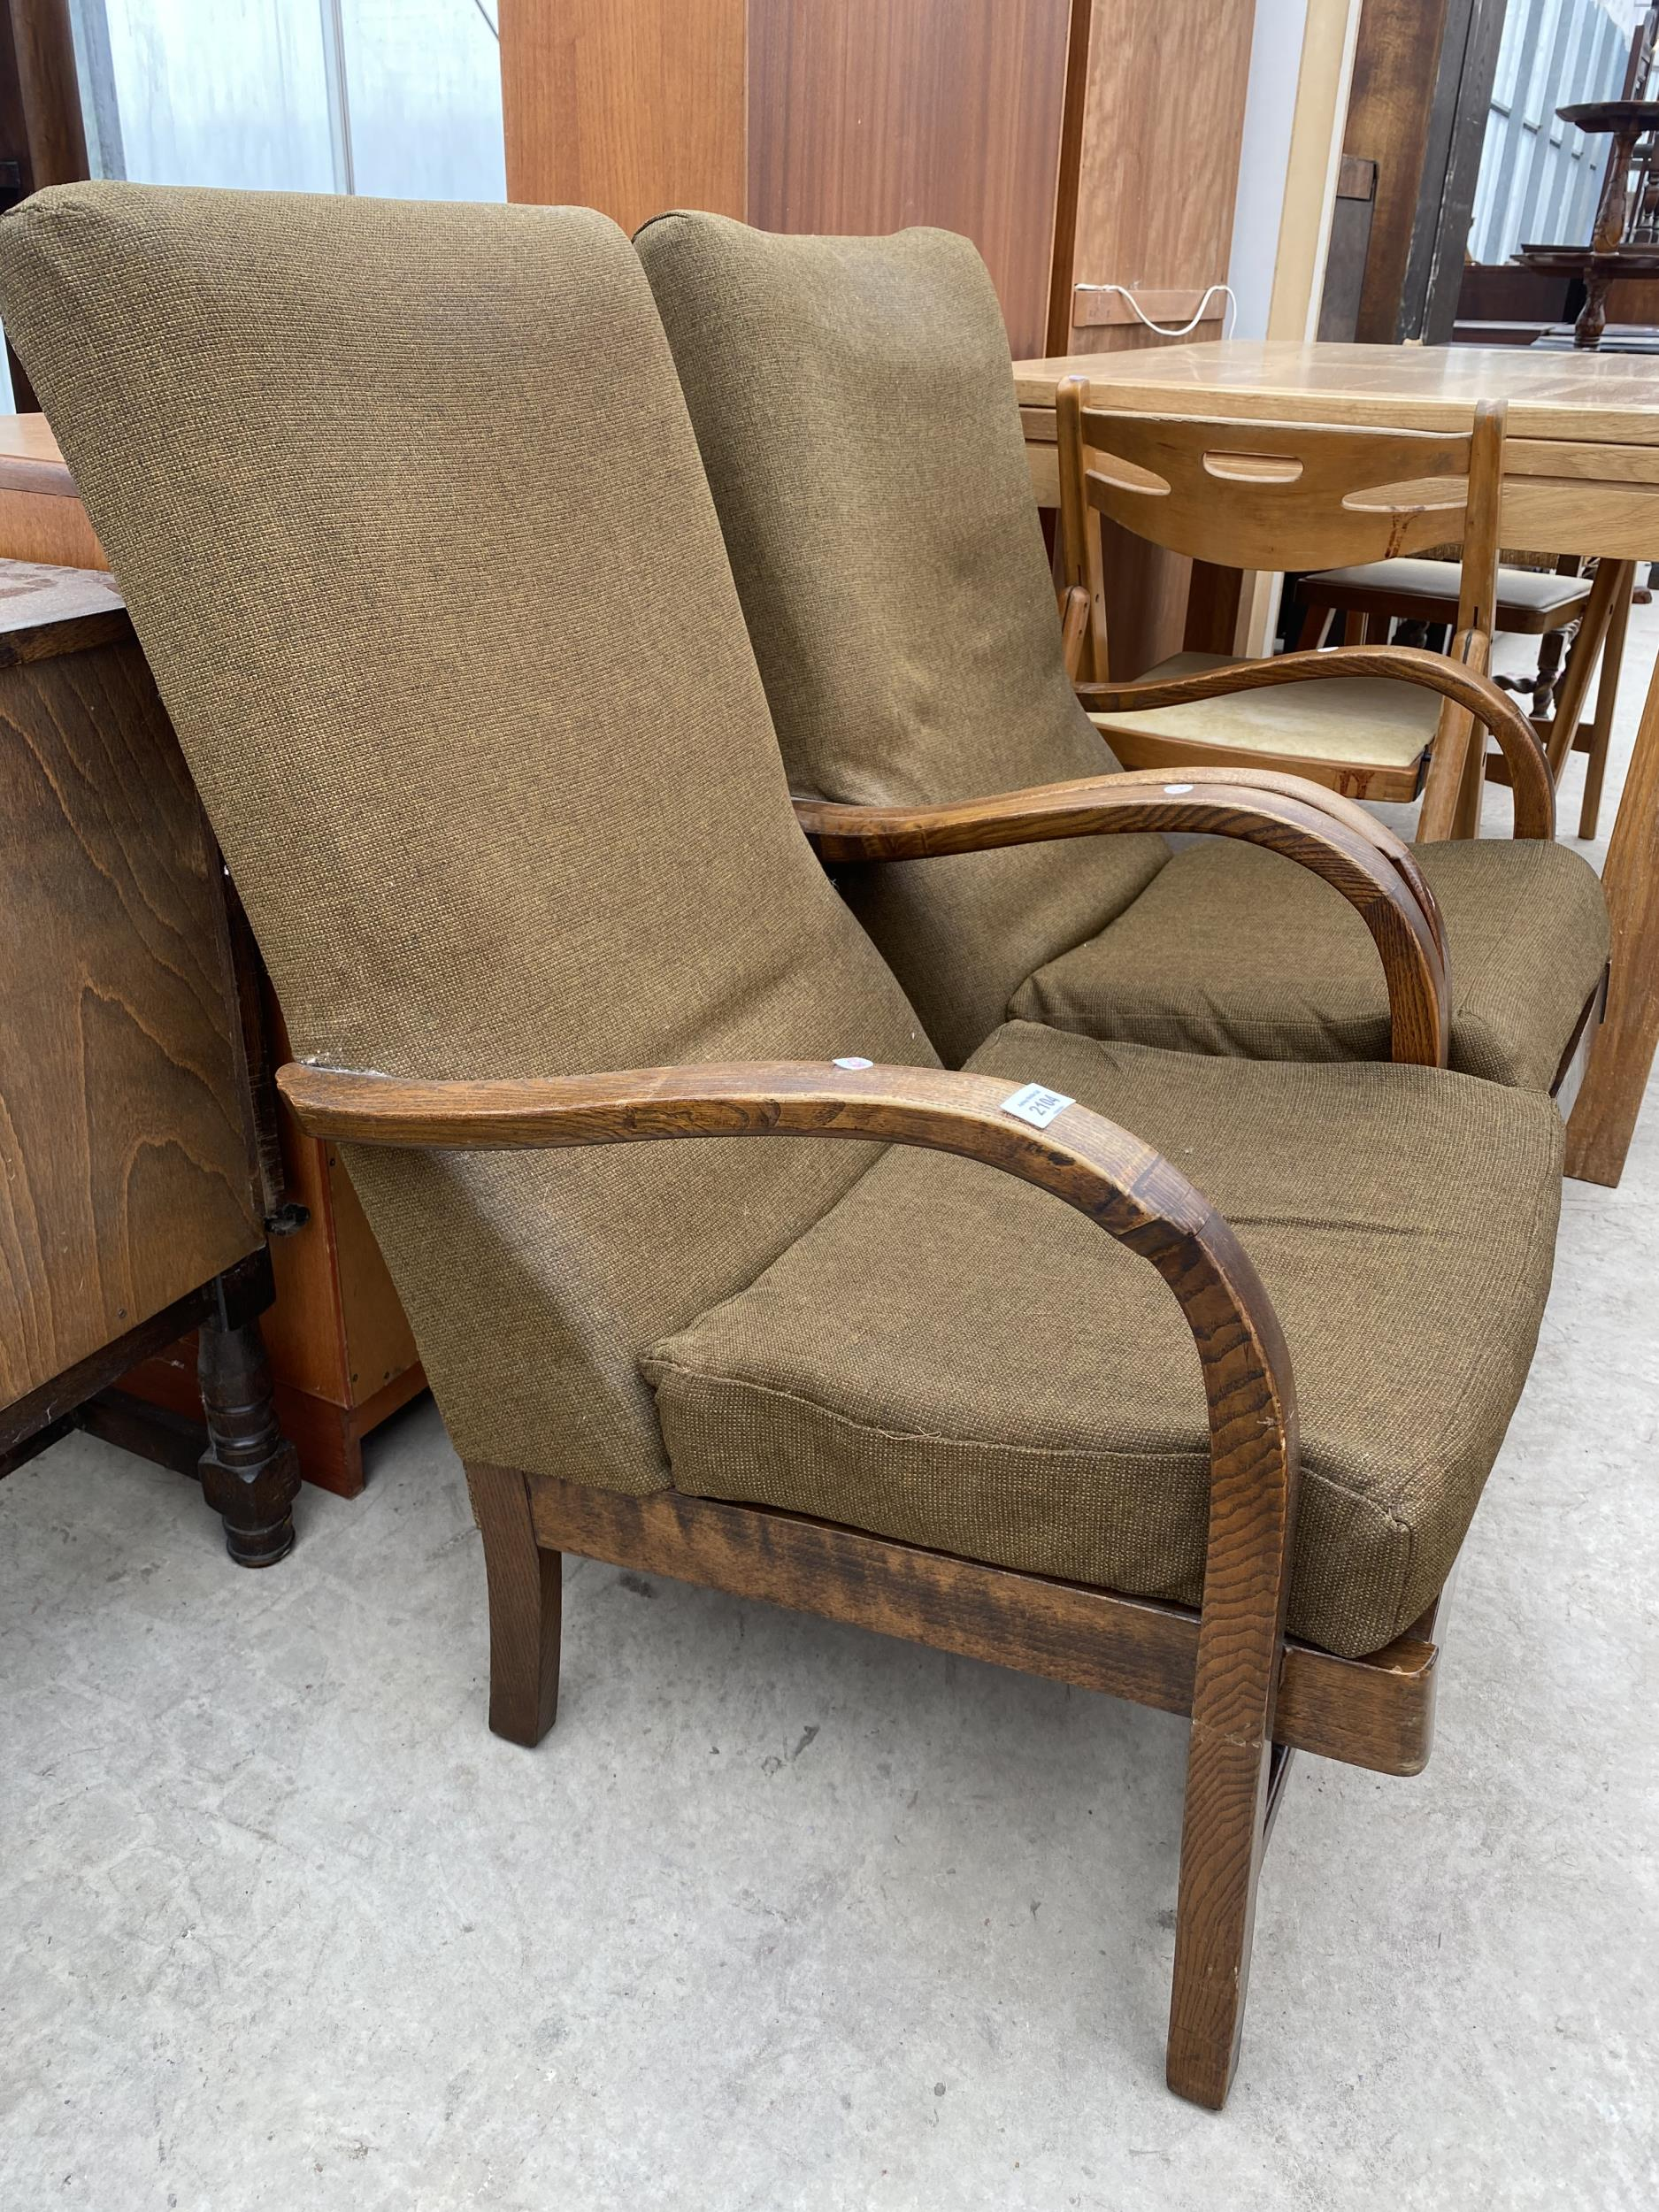 A PAIR OF ART DECO STYLE FIRESIDE CHAIRS - Image 2 of 4